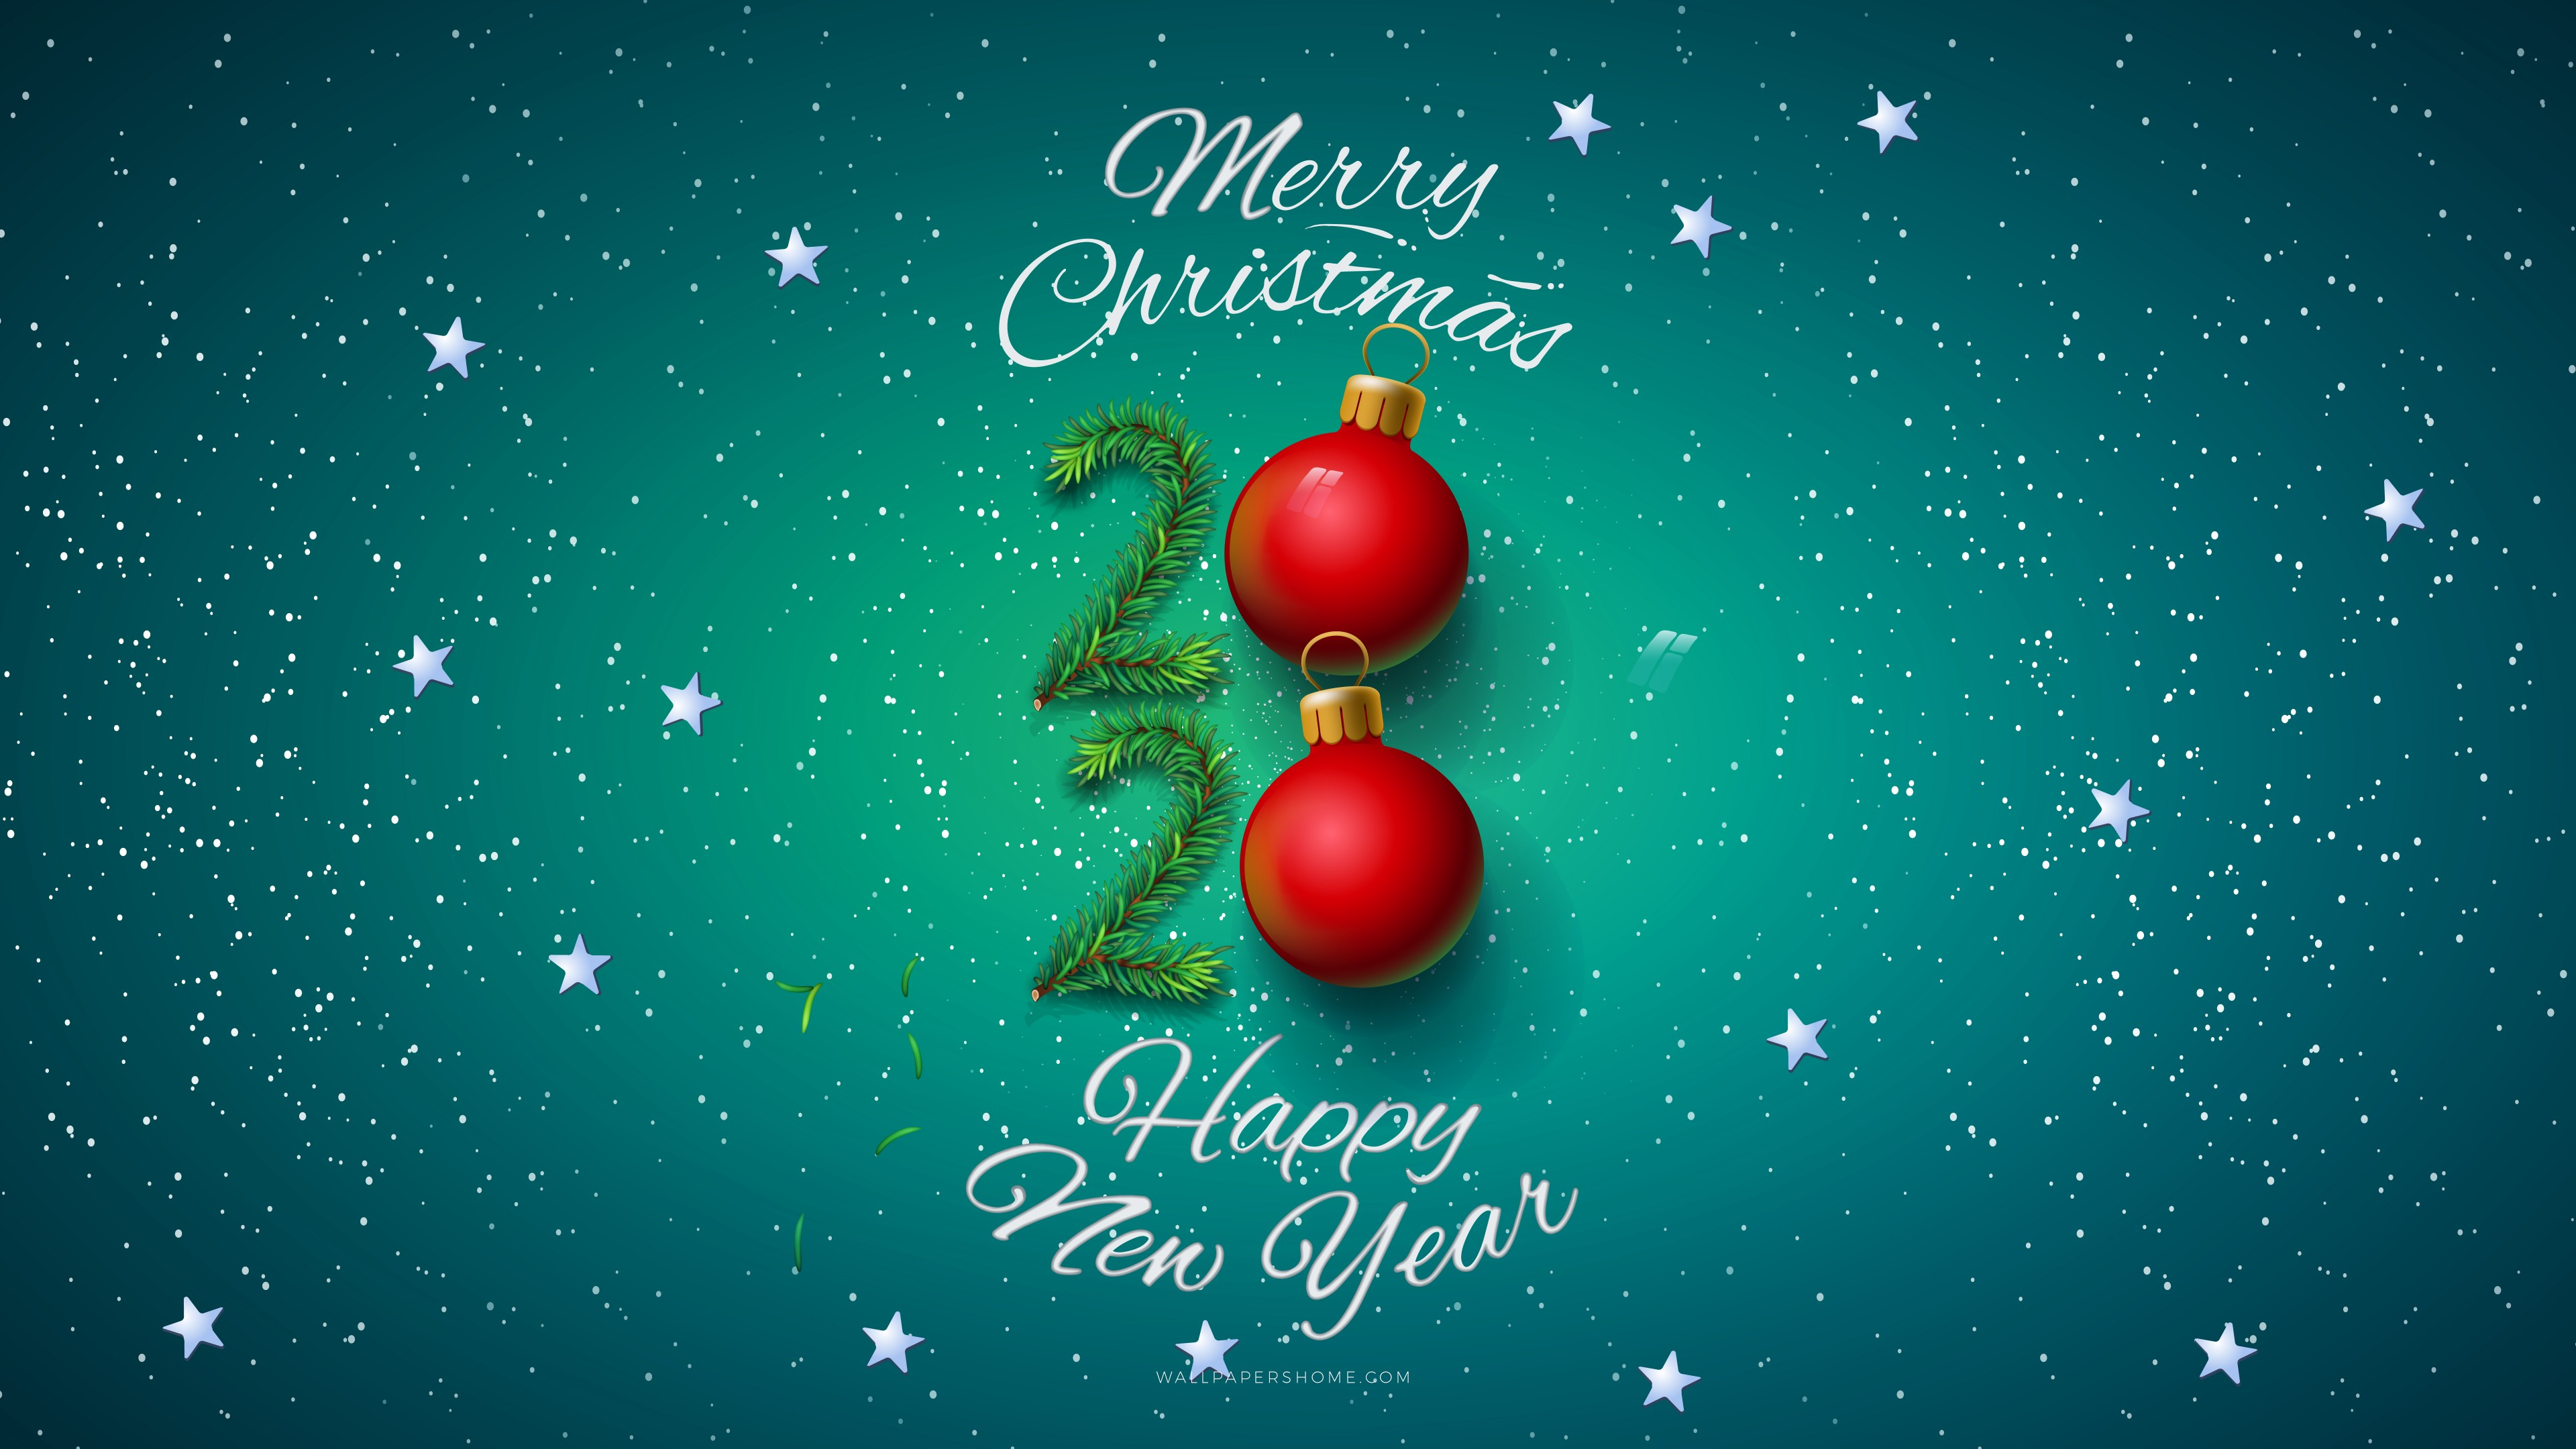 download 32] Christmas 2020 Pictures Wallpapers on 3840x2160